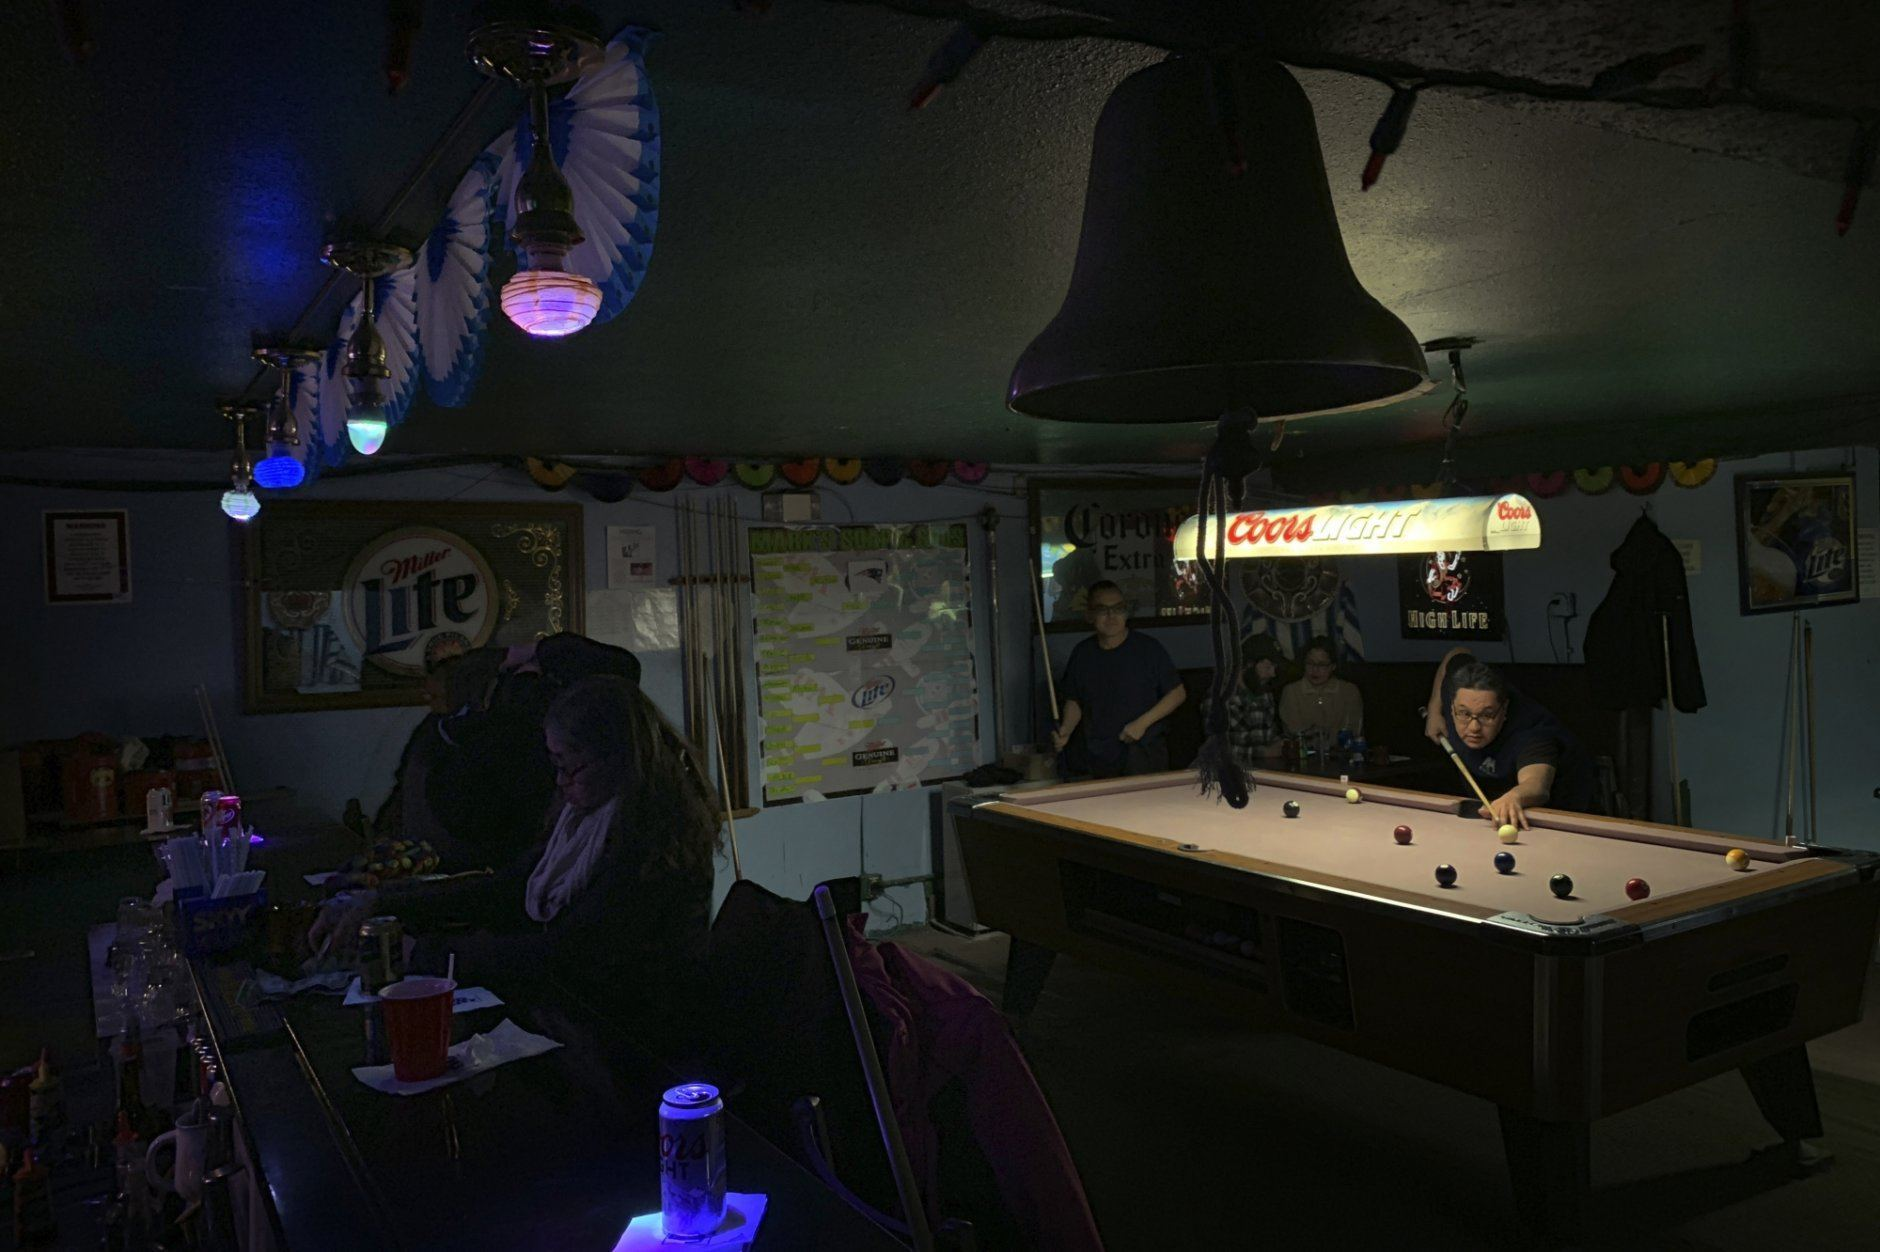 In this Feb. 23, 2019, photo, people play pool while some sit at the bar with their drinks at Soap and Suds, a popular nighttime spot, on Front Street in Nome, Alaska. (AP Photo/Wong Maye-E)